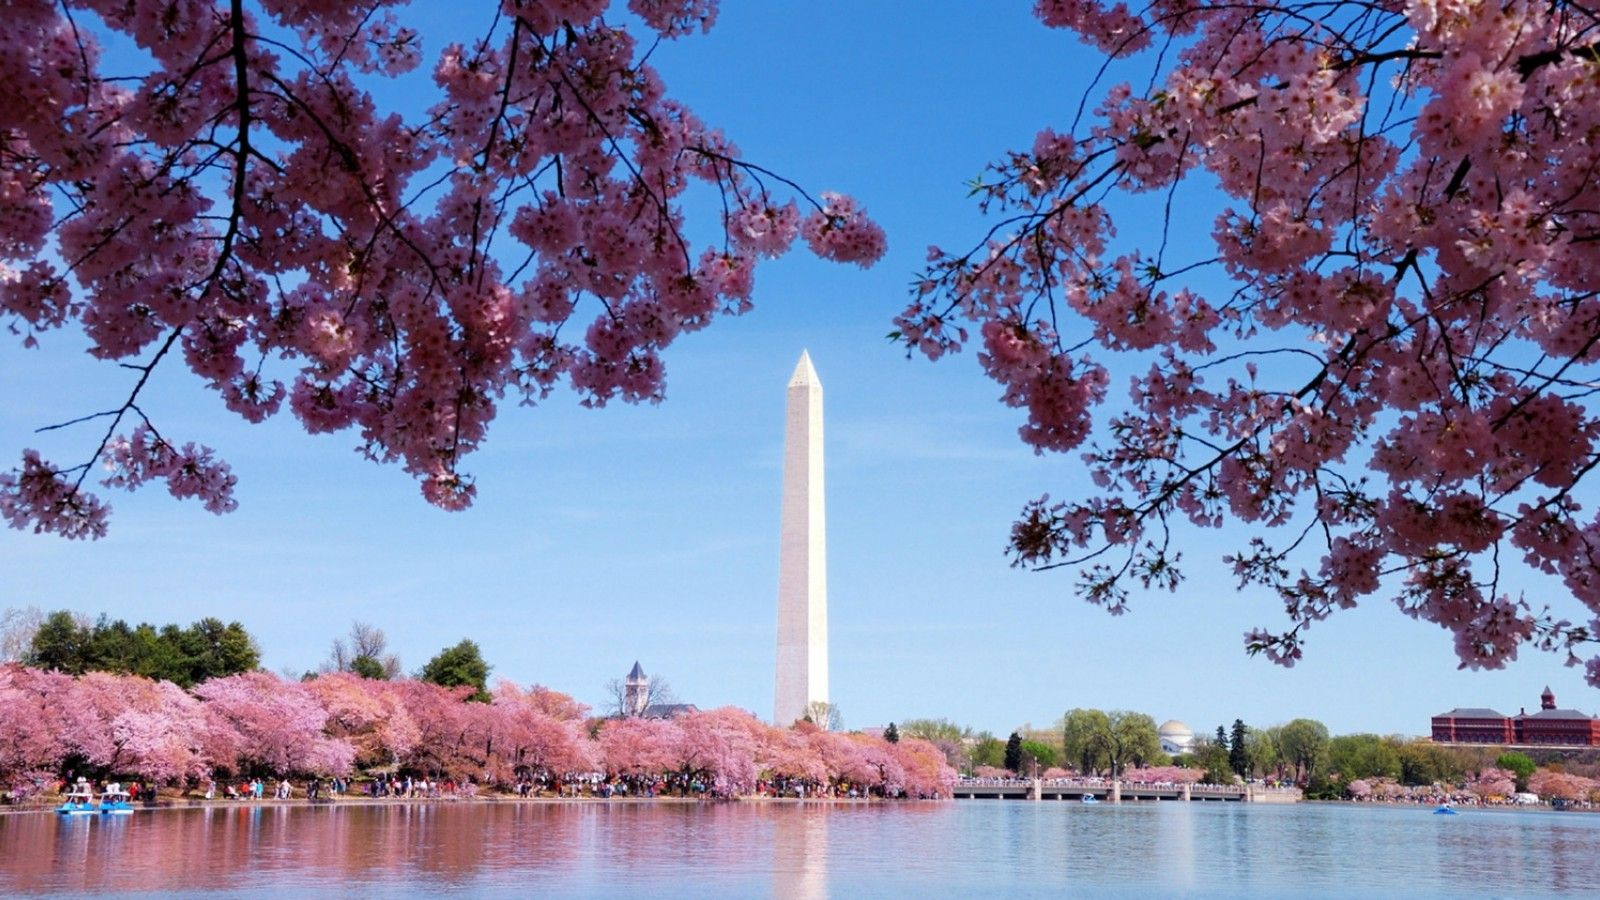 Things to do in Columbia MD - National Mall